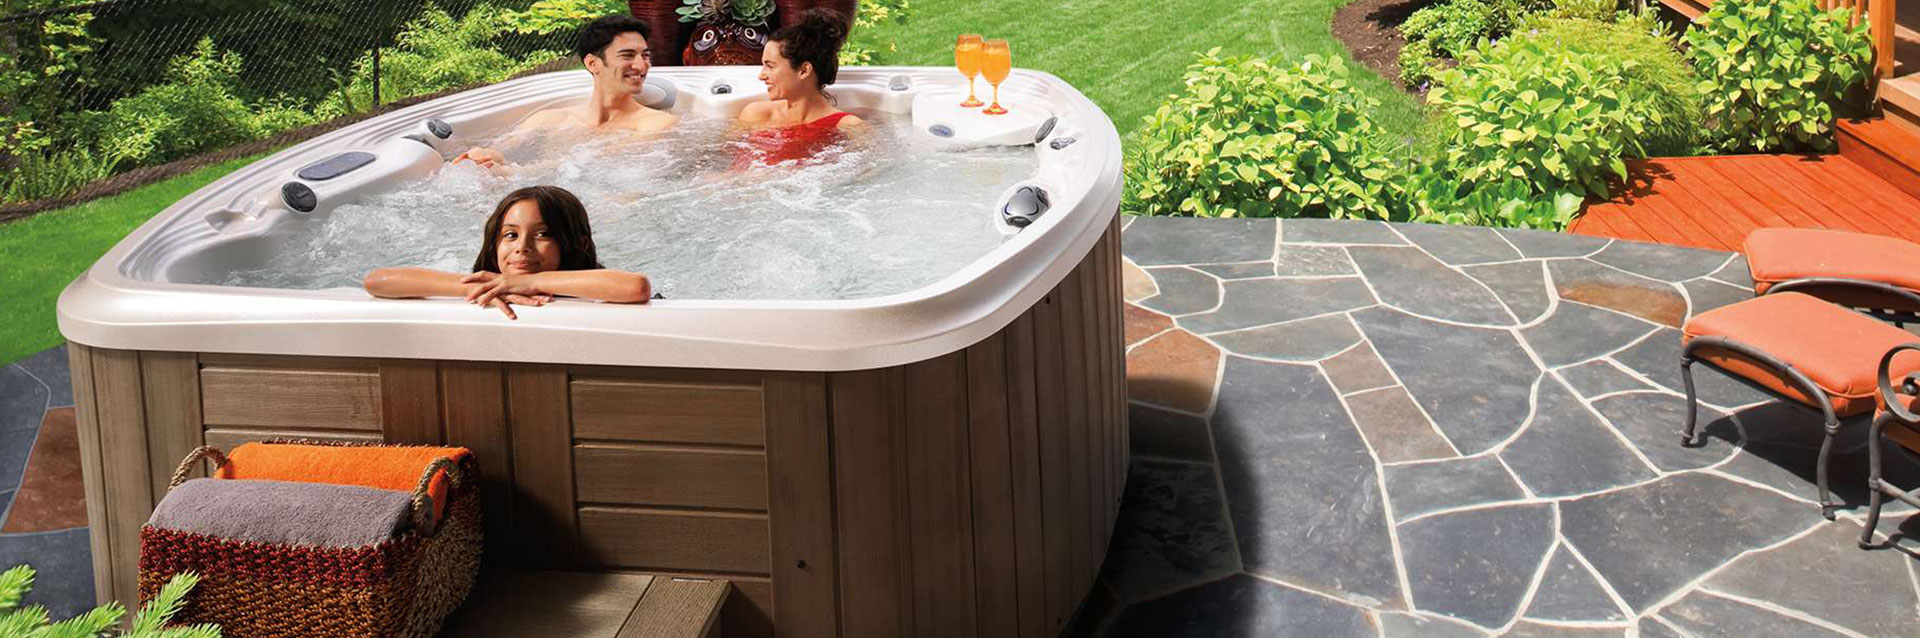 The resort hot tub in New Jersey